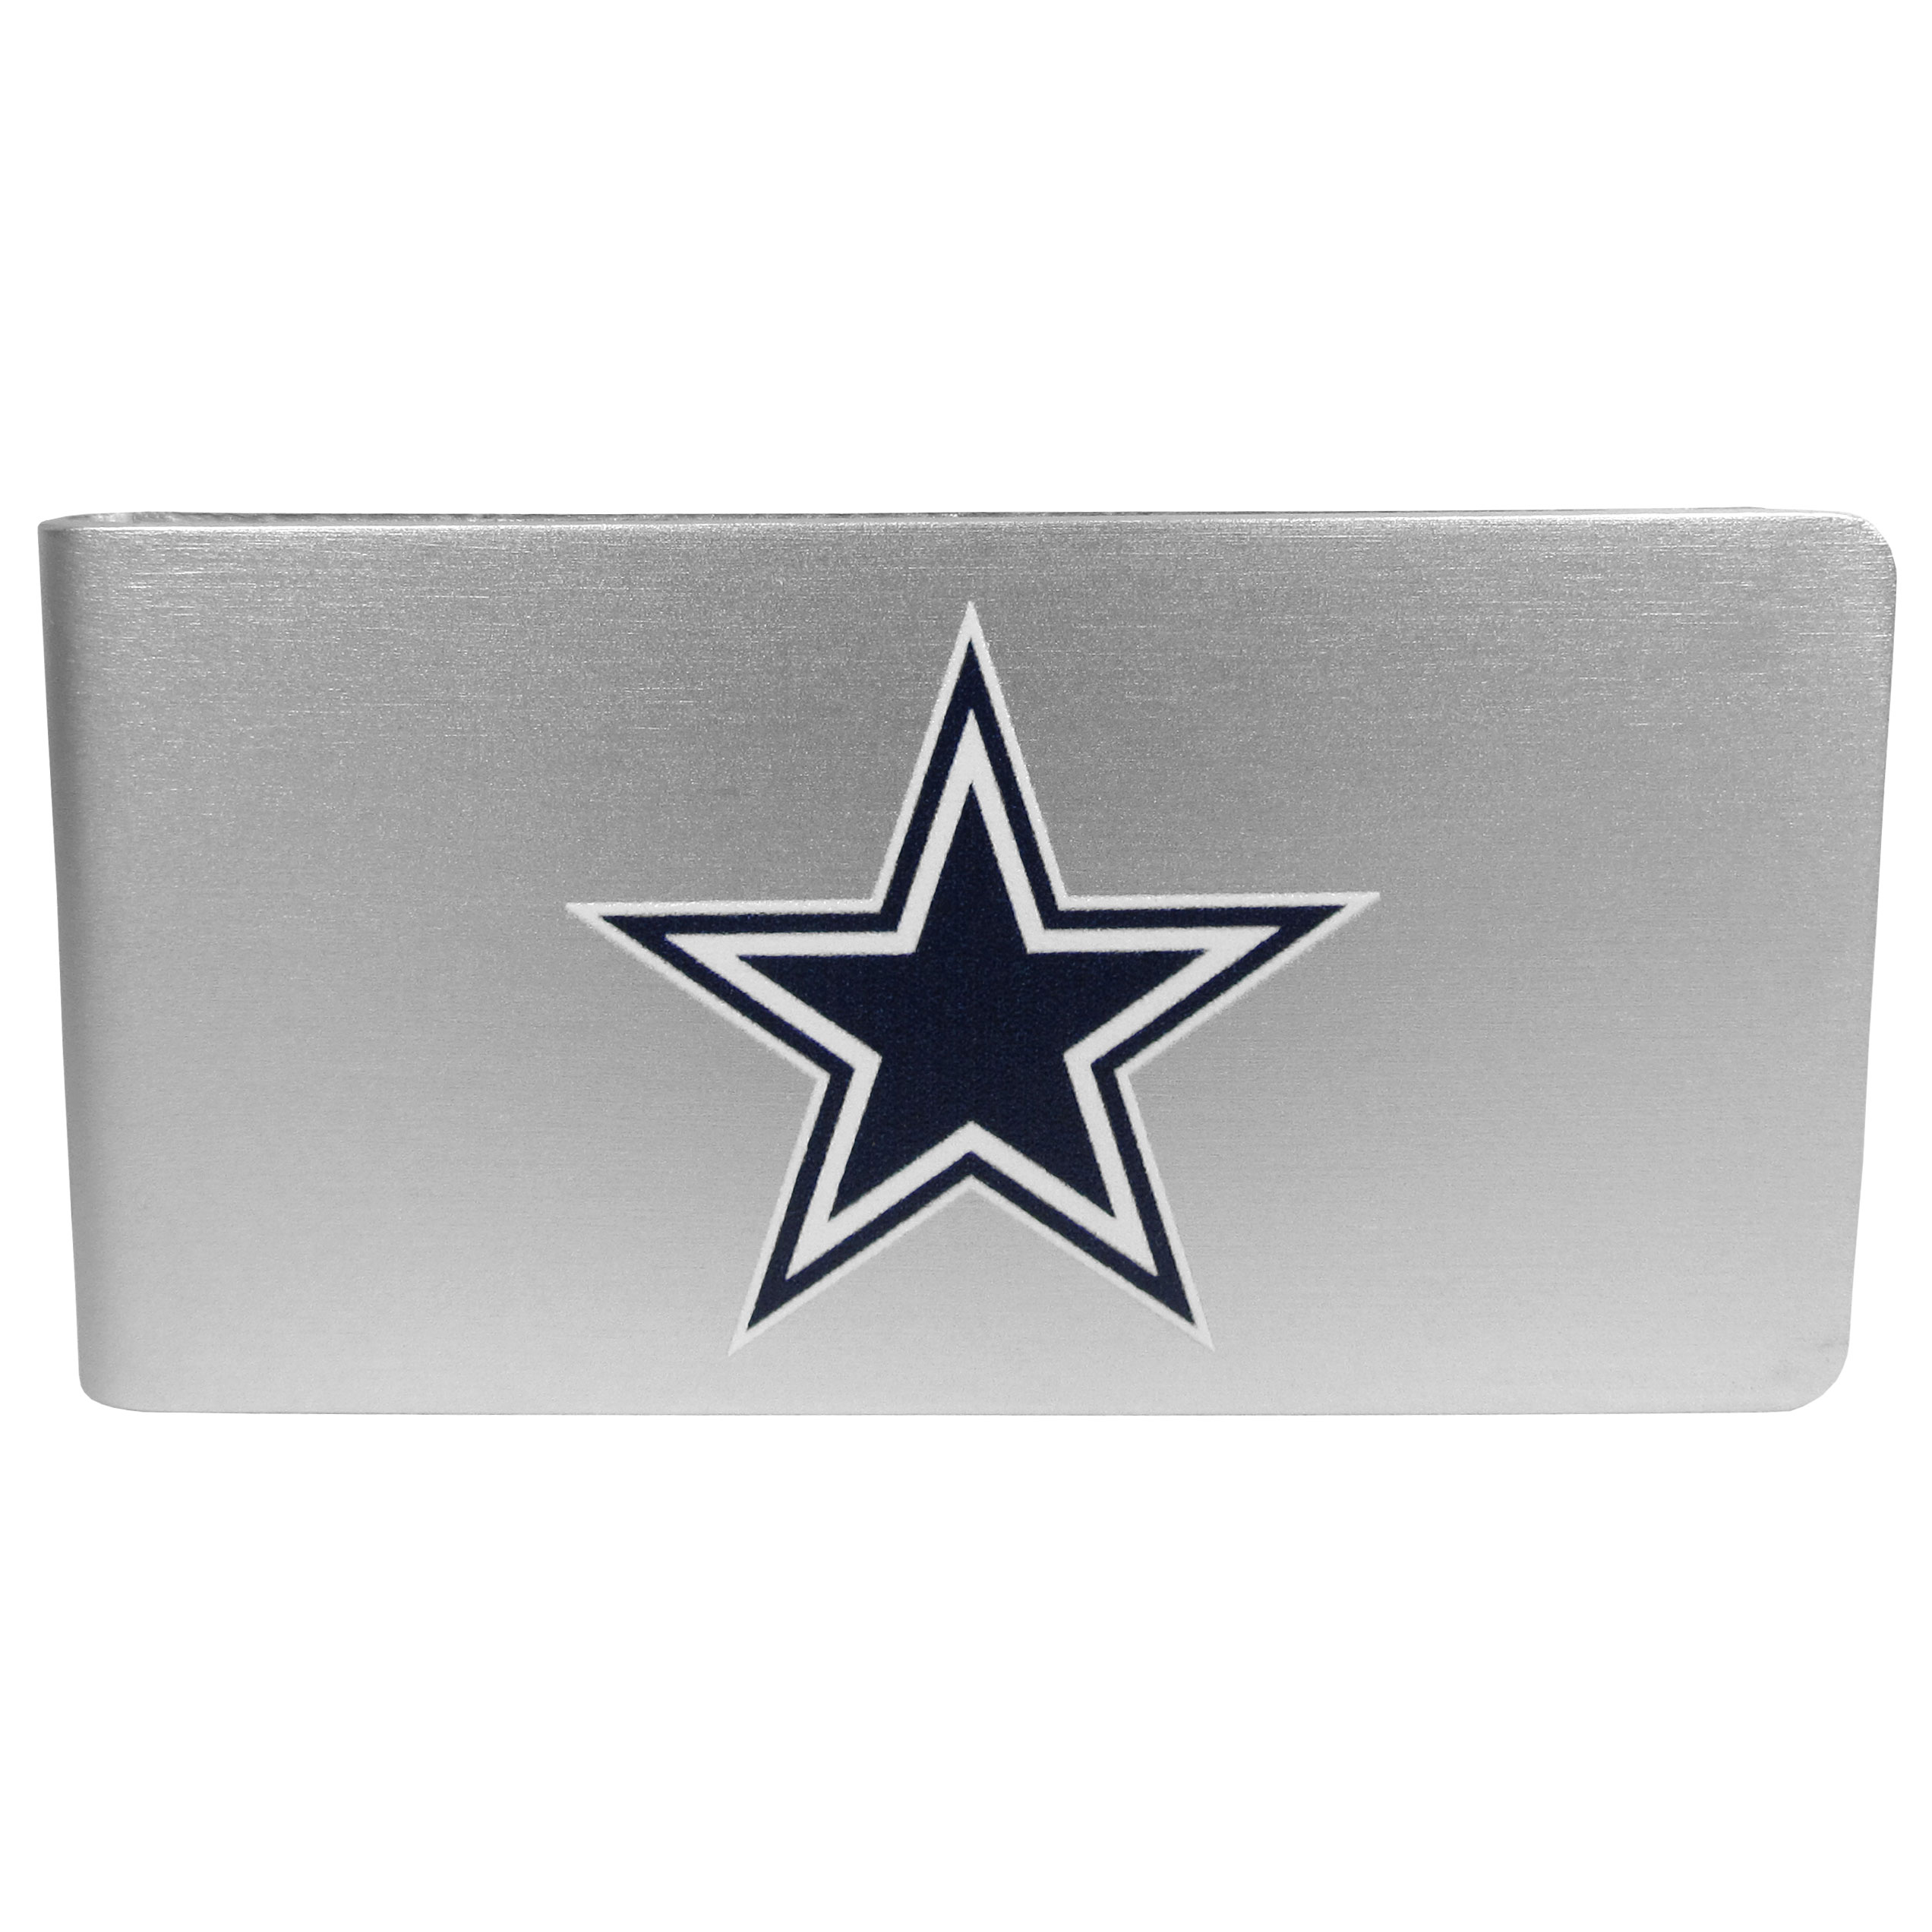 Dallas Cowboys Logo Money Clip - Our brushed metal money clip has classic style and functionality. The attractive clip features the Dallas Cowboys logo expertly printed on front.